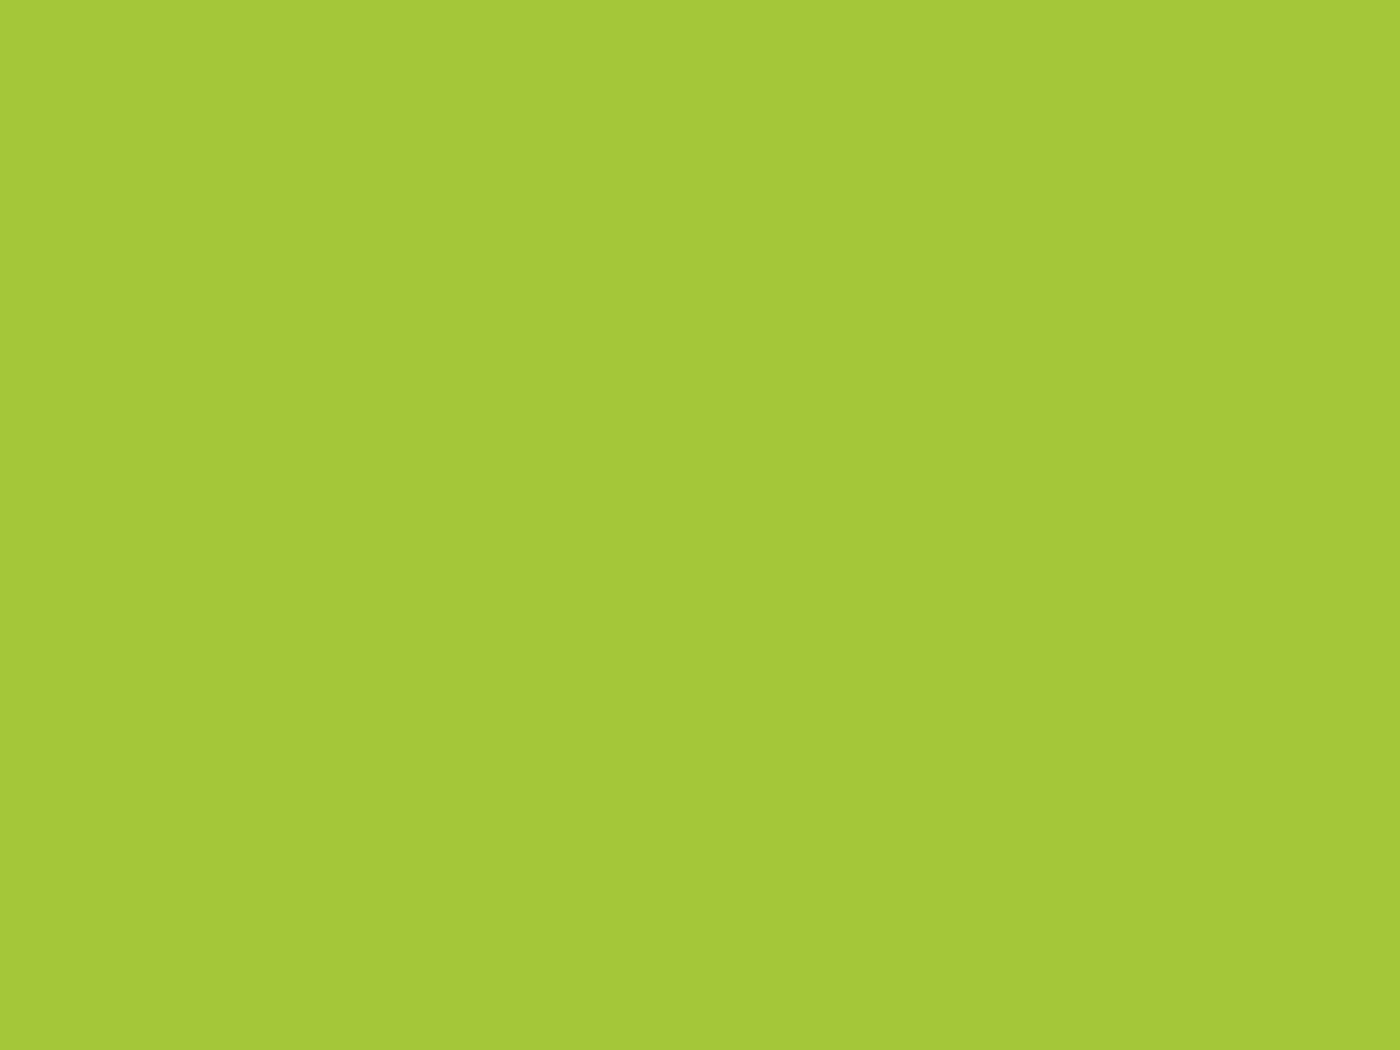 1400x1050 Android Green Solid Color Background